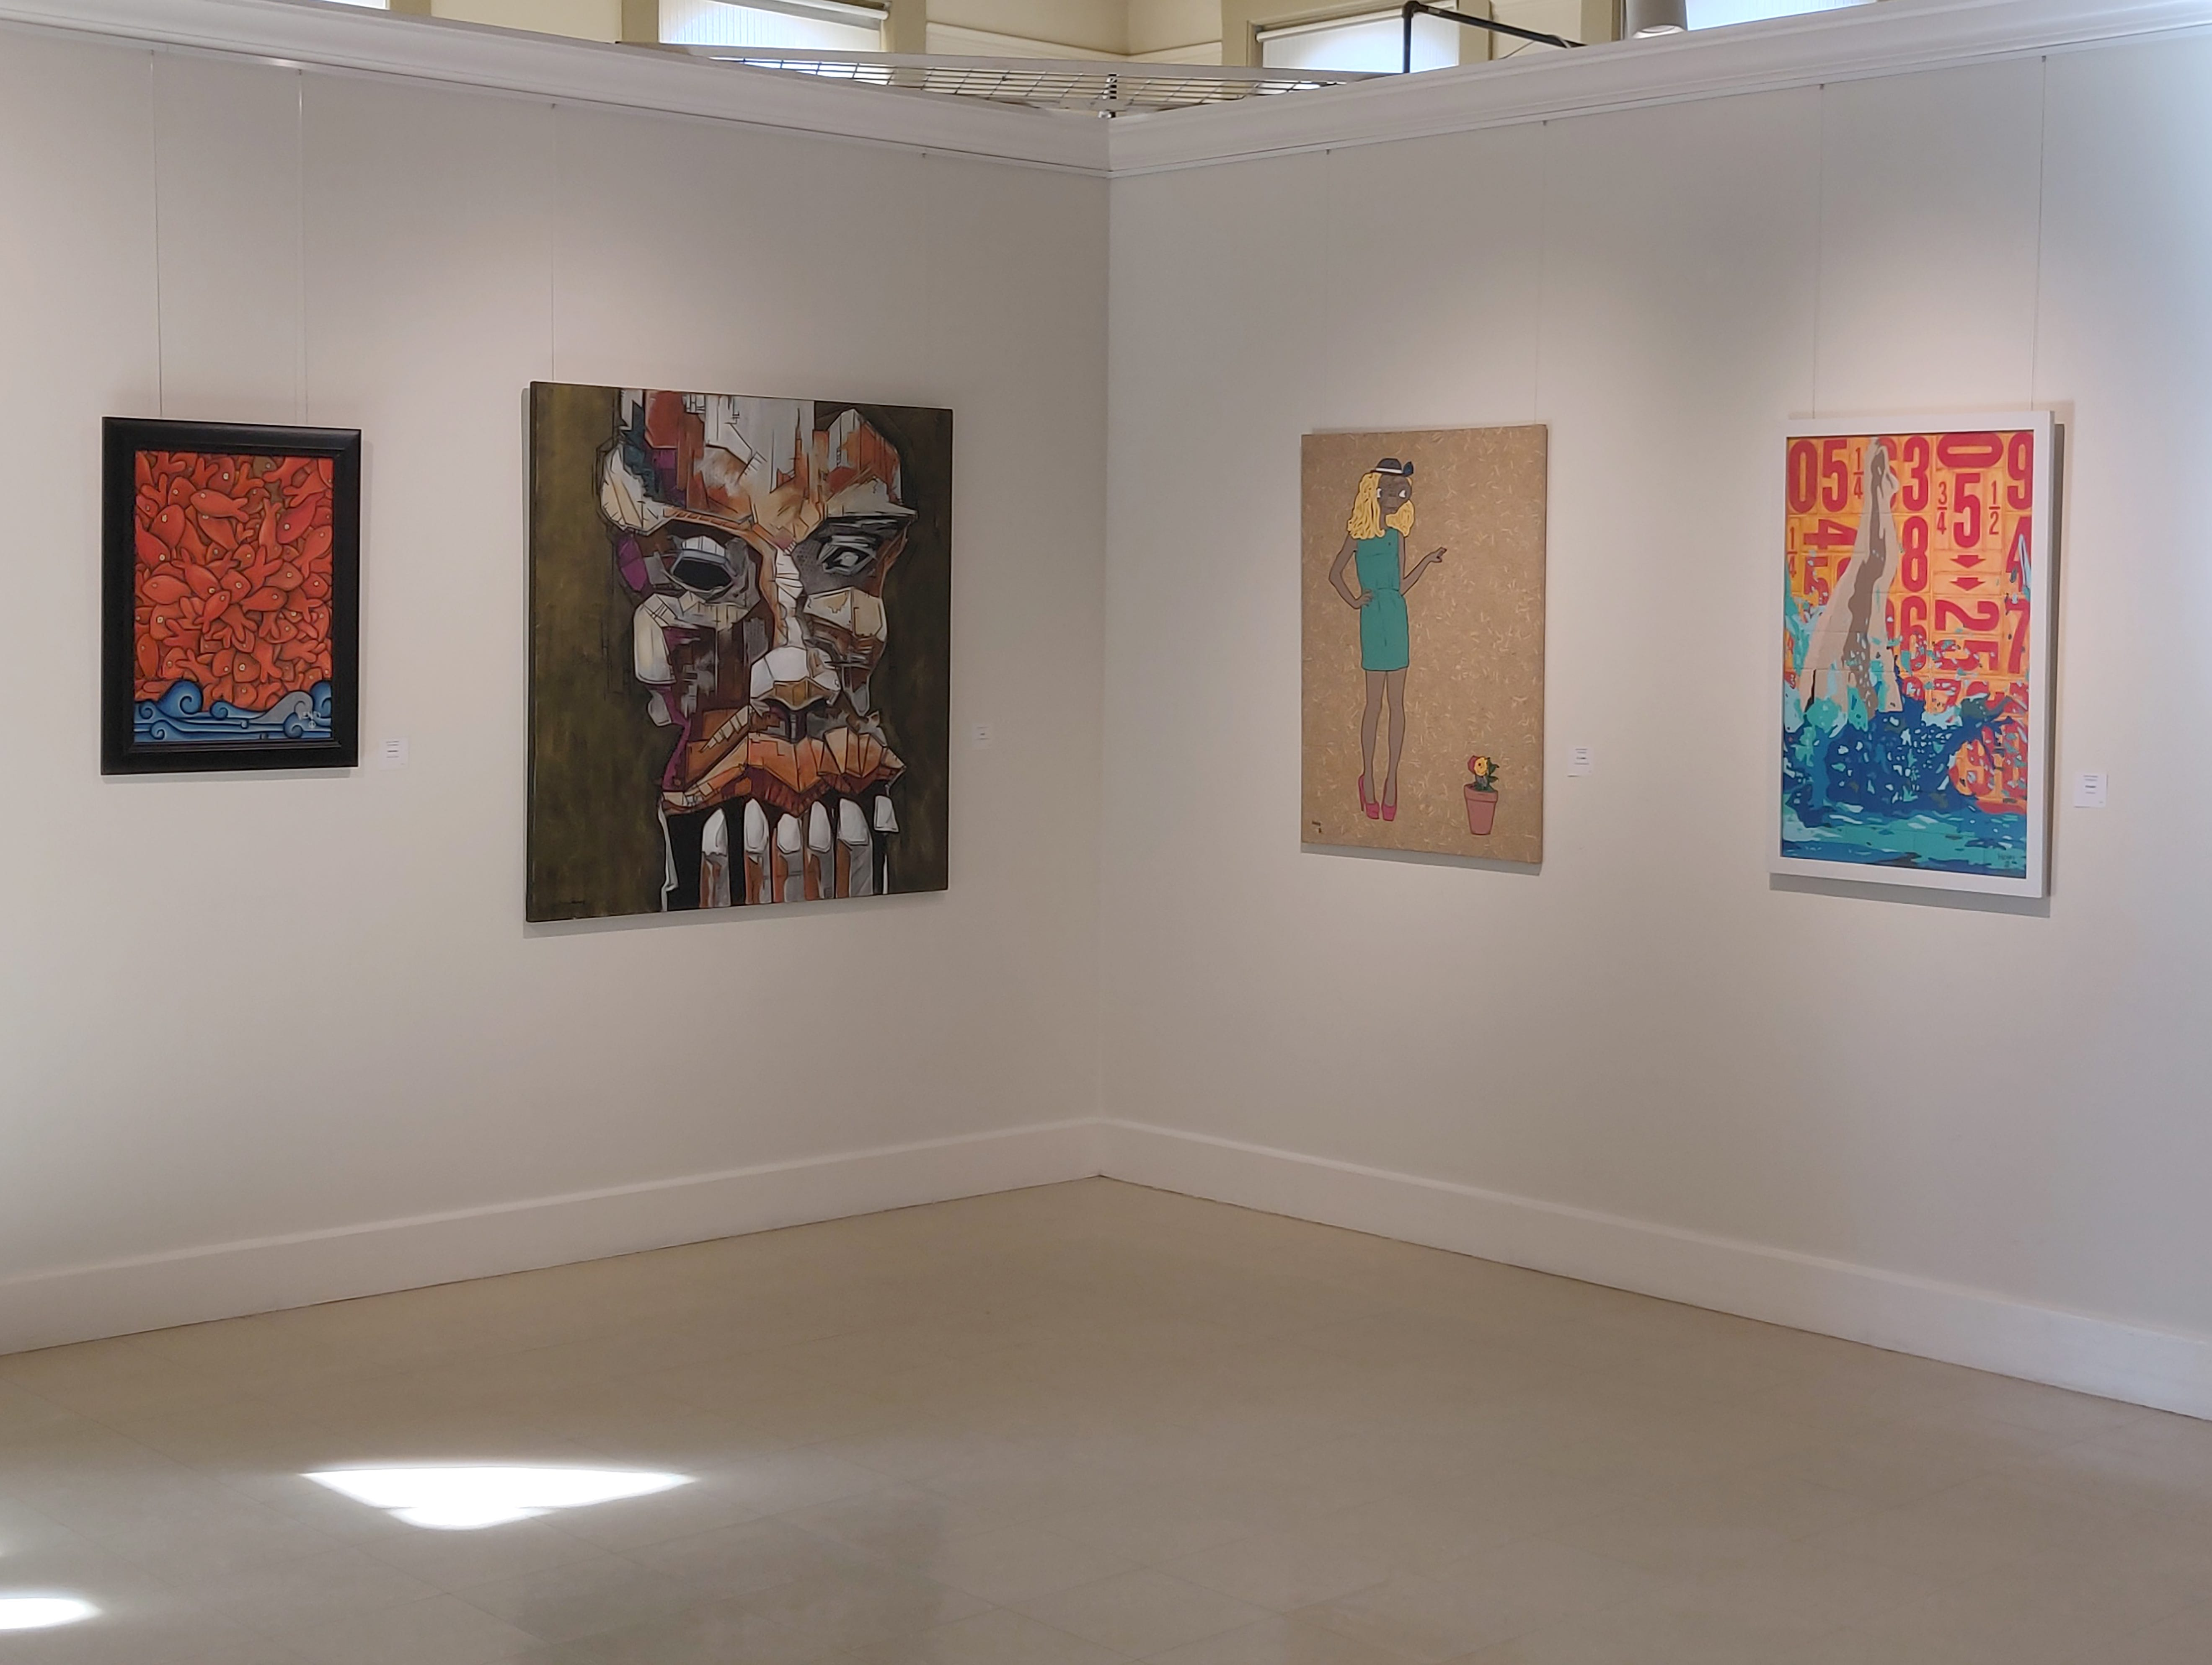 """Shasta County Arts Council's gallery exhibit during the 2019 Cultura Cruise is called """"Figuring Juncture,"""" with work by Happy Valley-born artist Justin Patton and Spanish painter Karlo Henry Velazquez. Both artists live and work in Shasta County."""